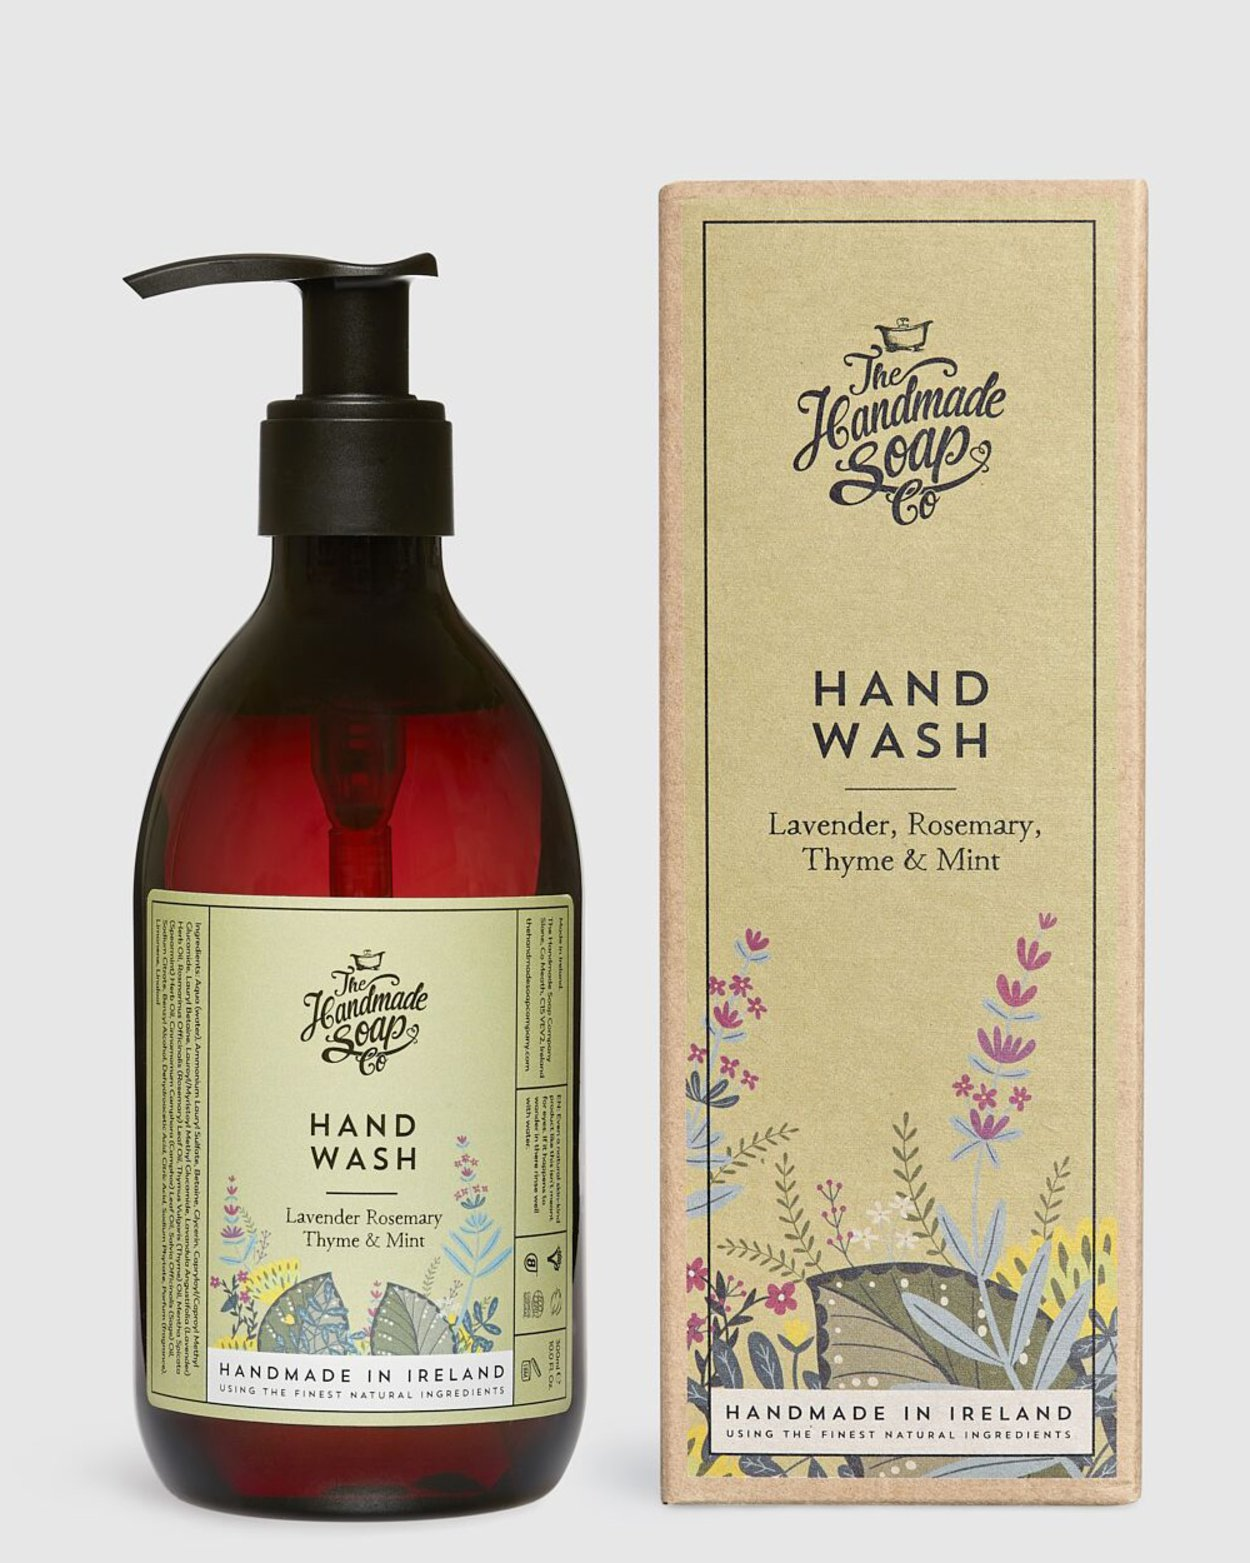 Lavender Rosemary Thyme & Mint Hand Wash